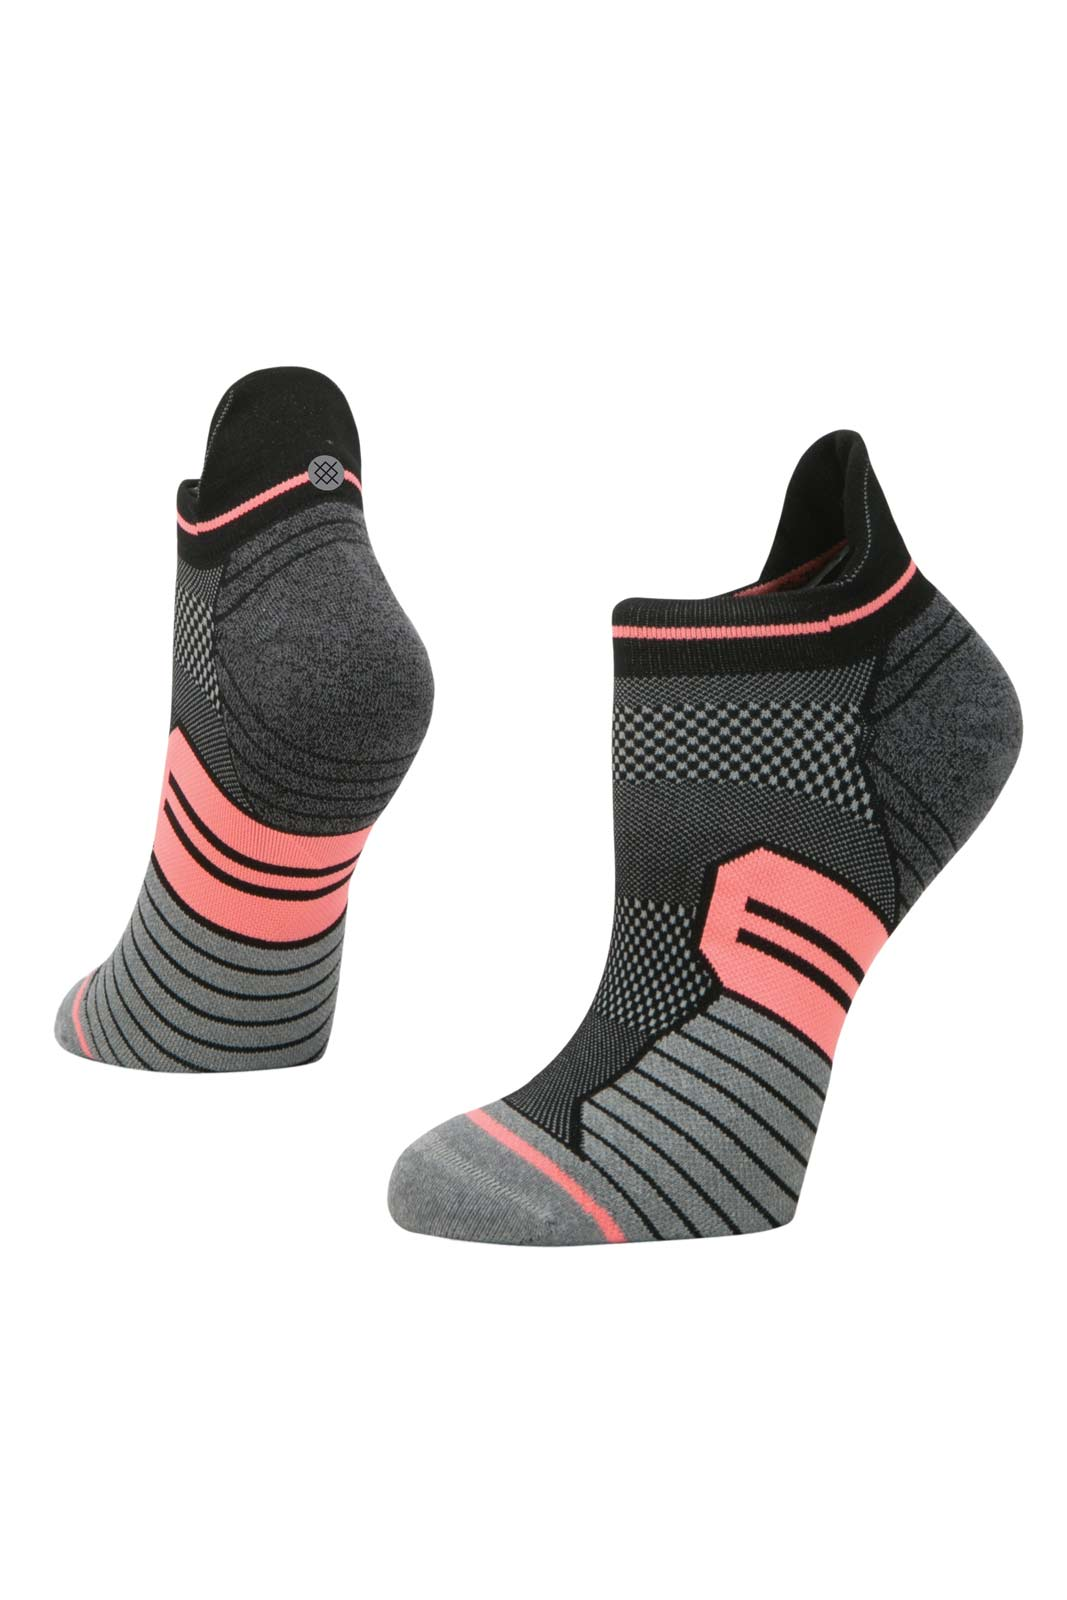 Stance Windy Run Tab - Women's image 2 - The Sports Edit